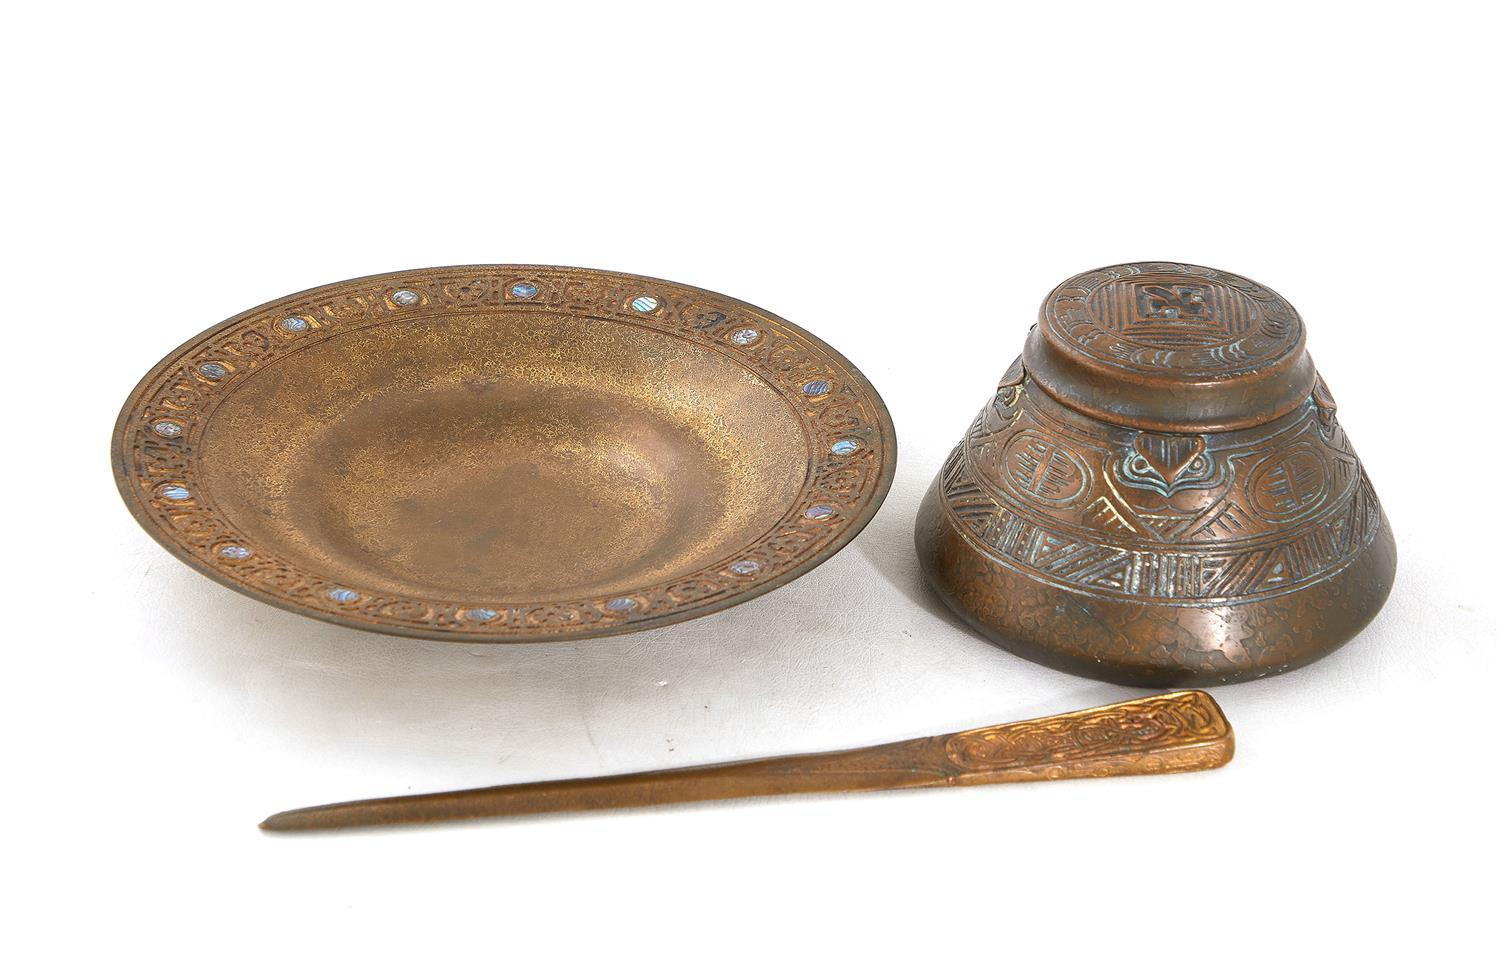 Tiffany Studios inkwell, letter opener and dish (3pcs)